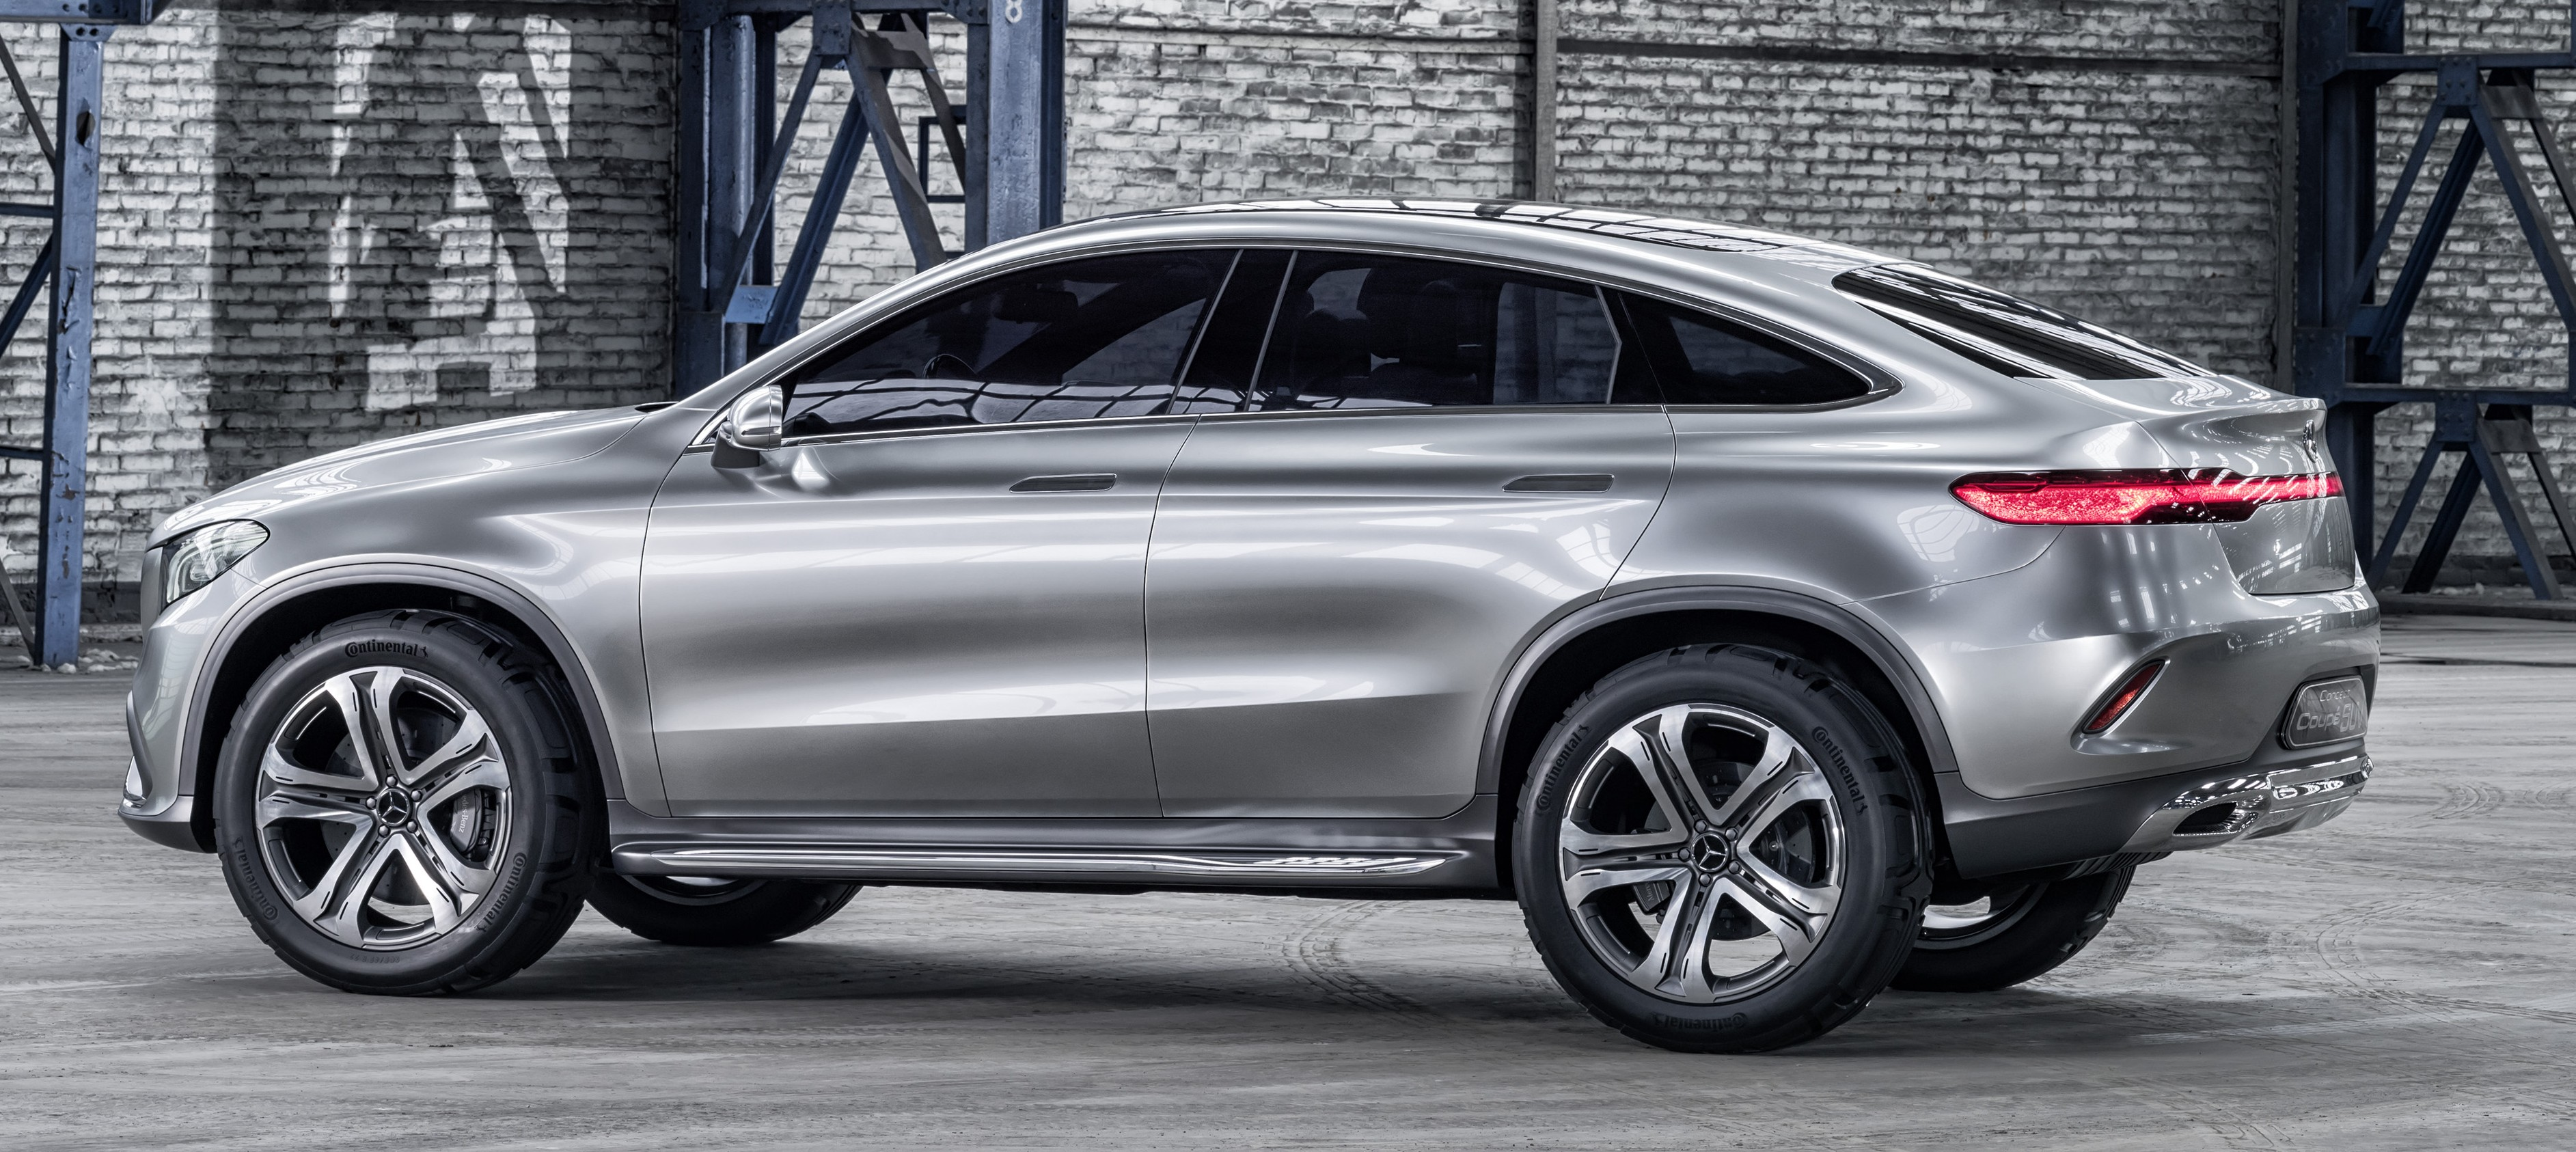 Mercedes Benz Coupe Suv Concept Previews X6 Rival Image 242564